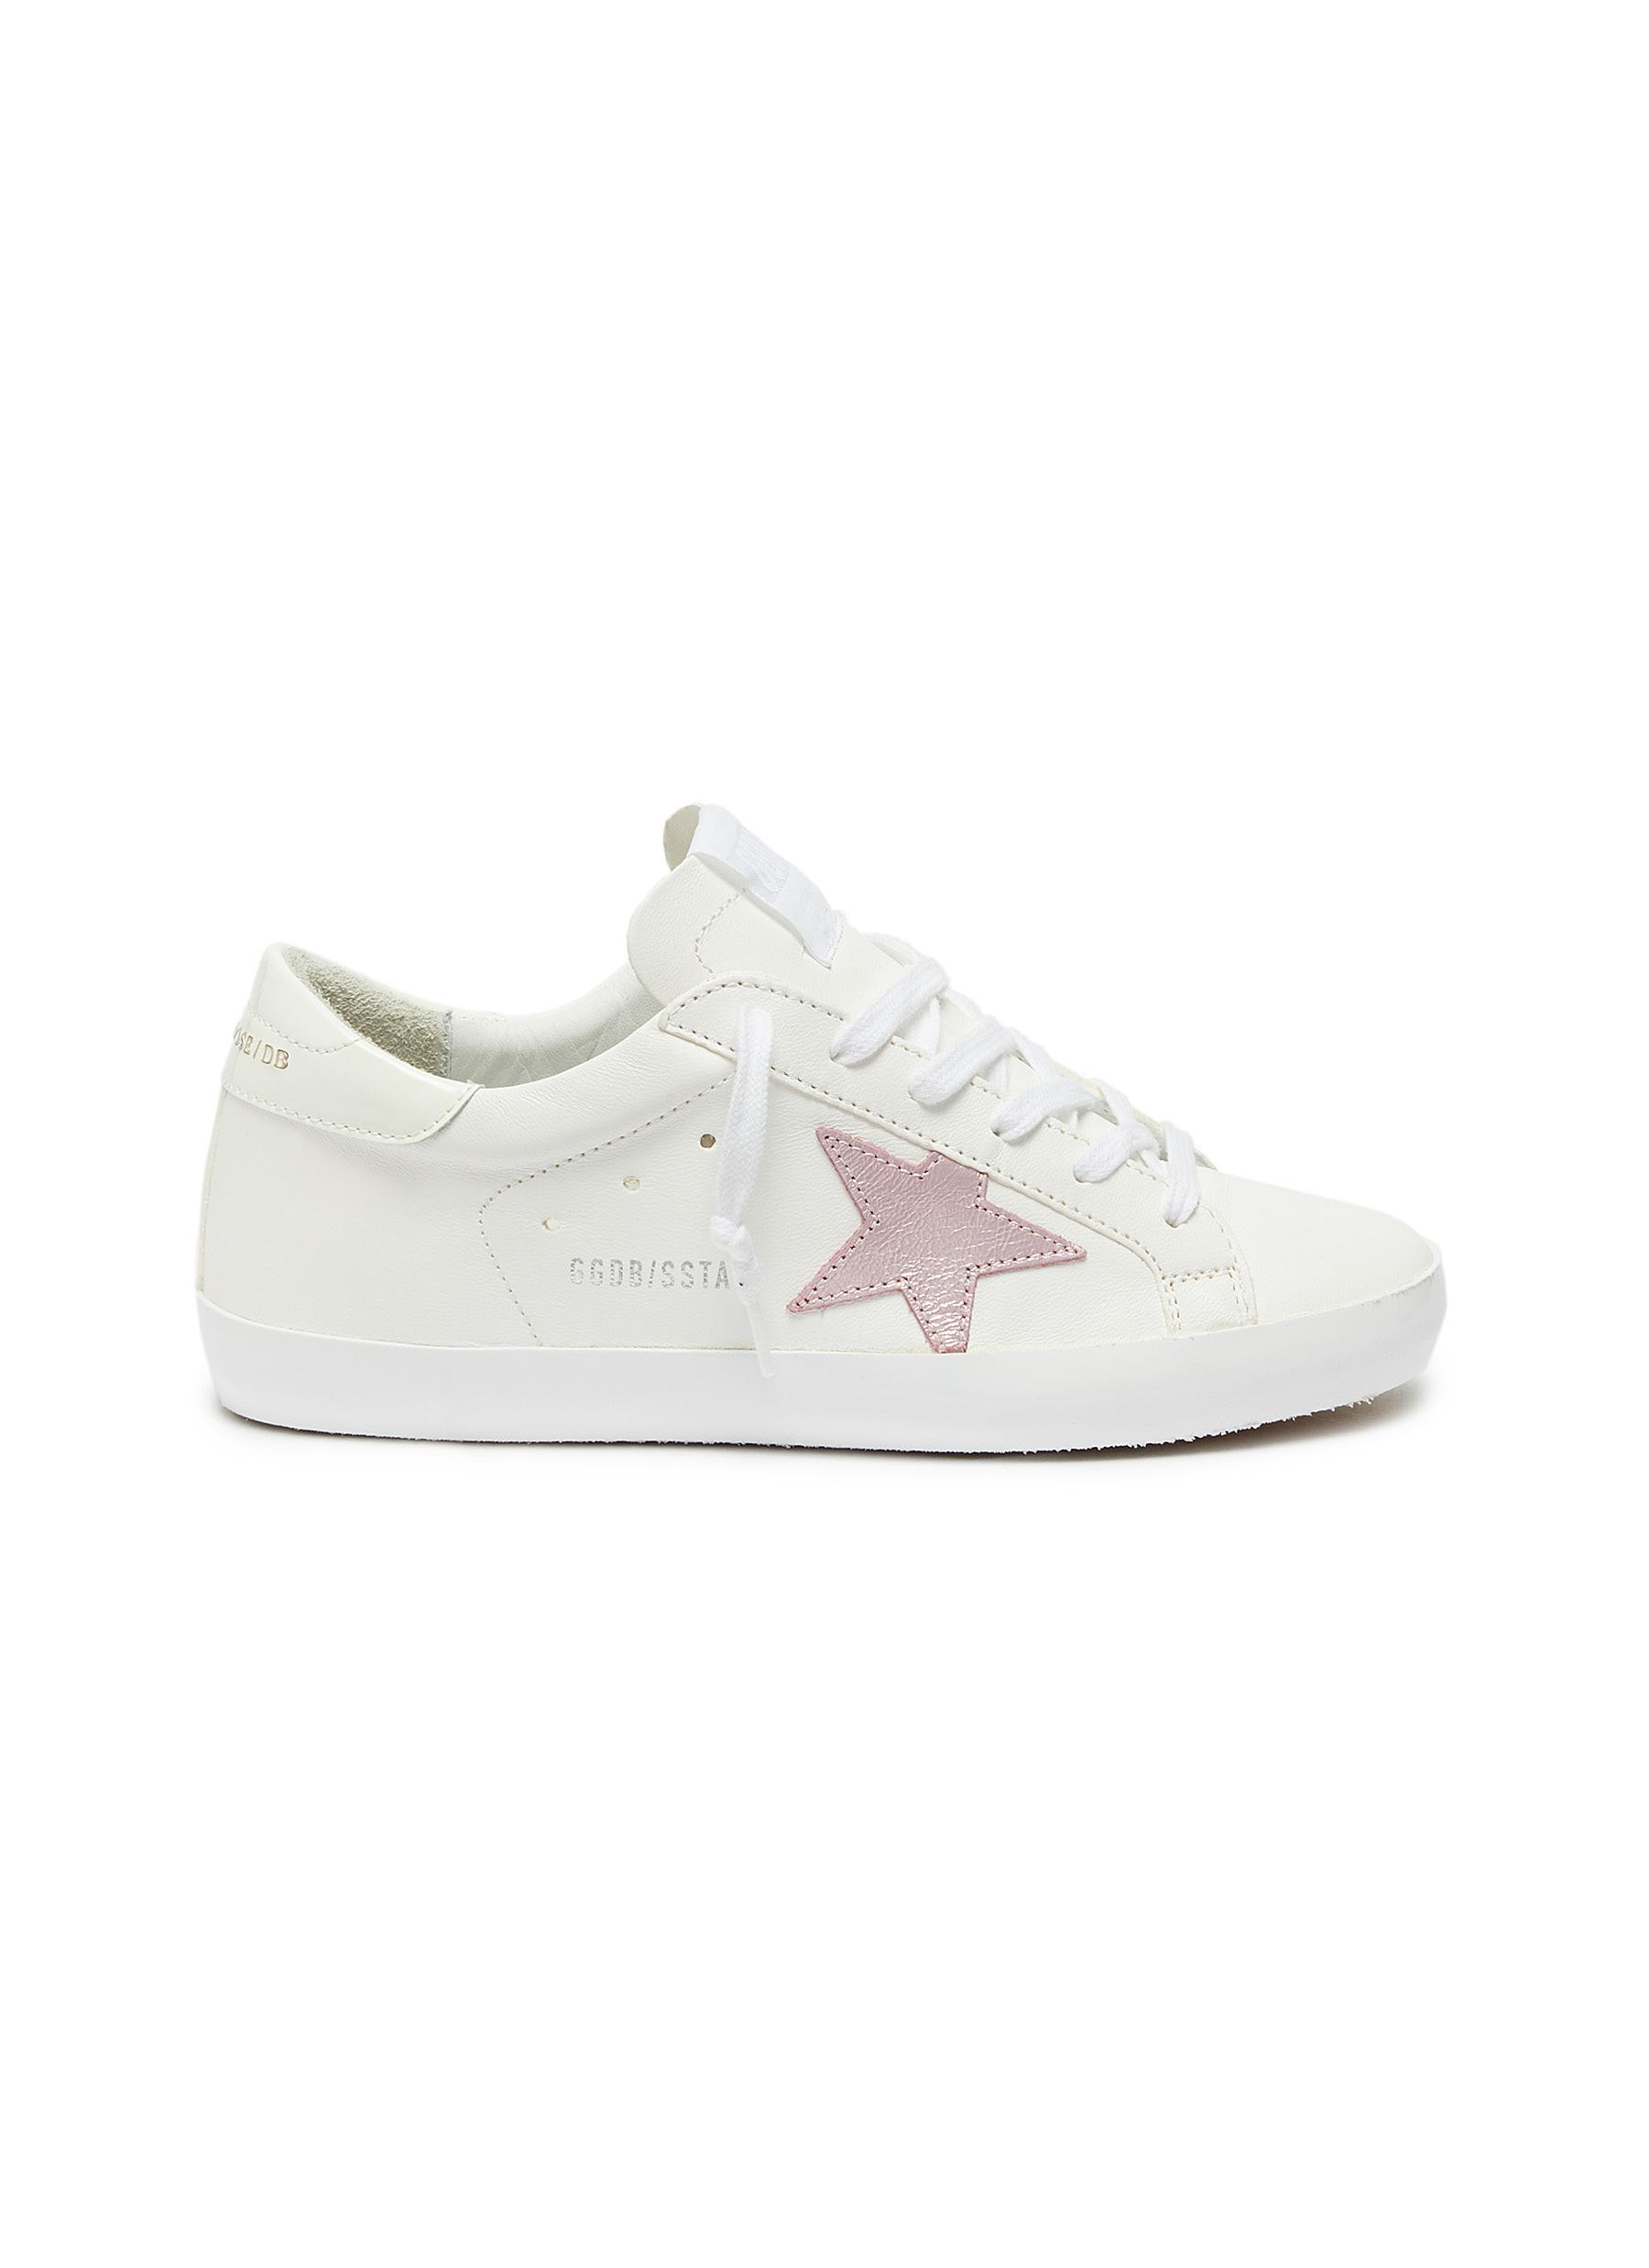 Superstar leather sneakers by Golden Goose